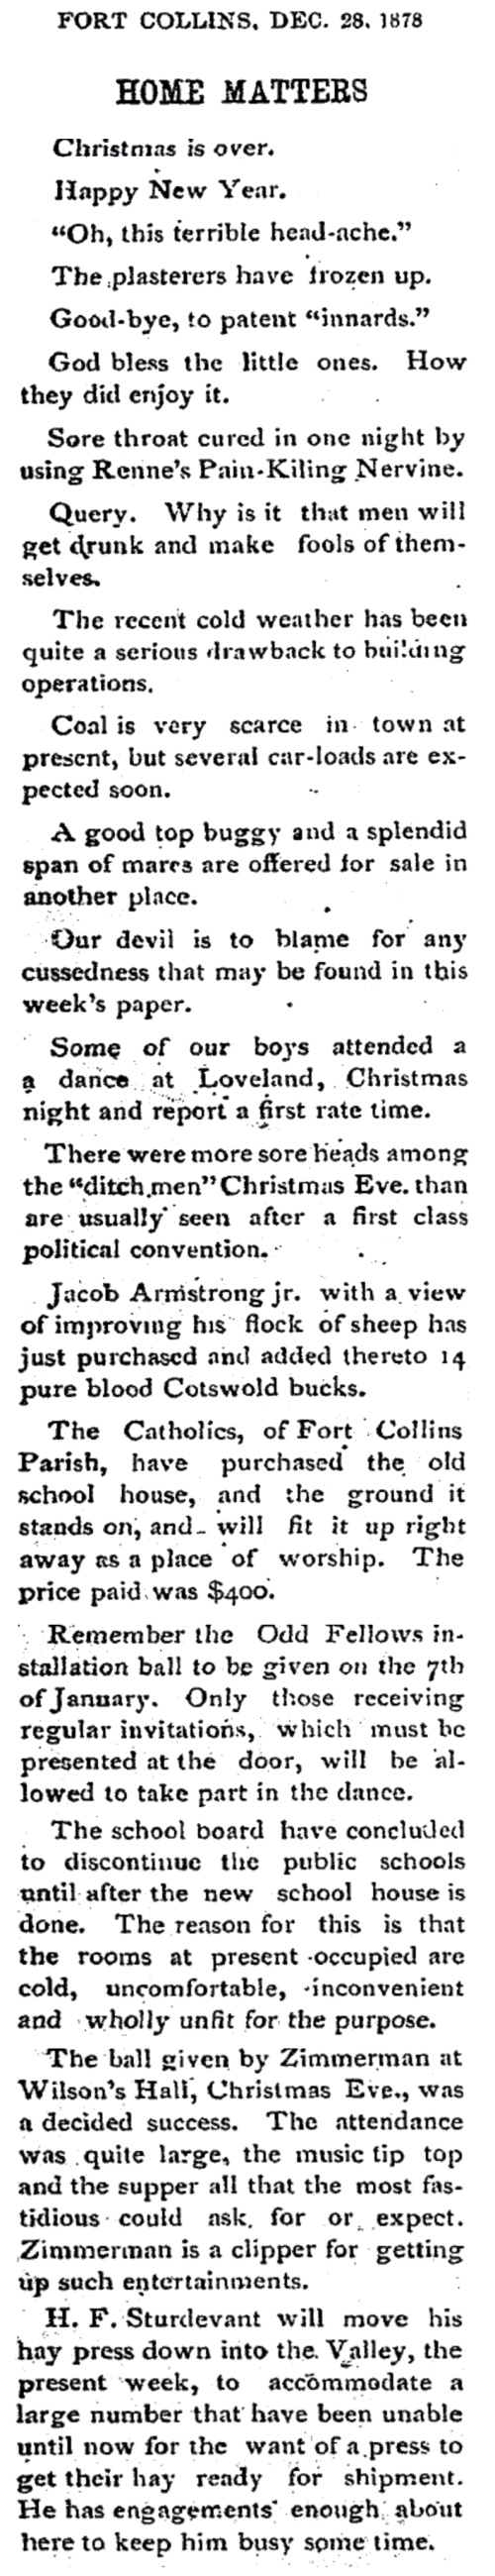 Christmas is over, but the Christmas Ball was a decided success – December 28, 1878